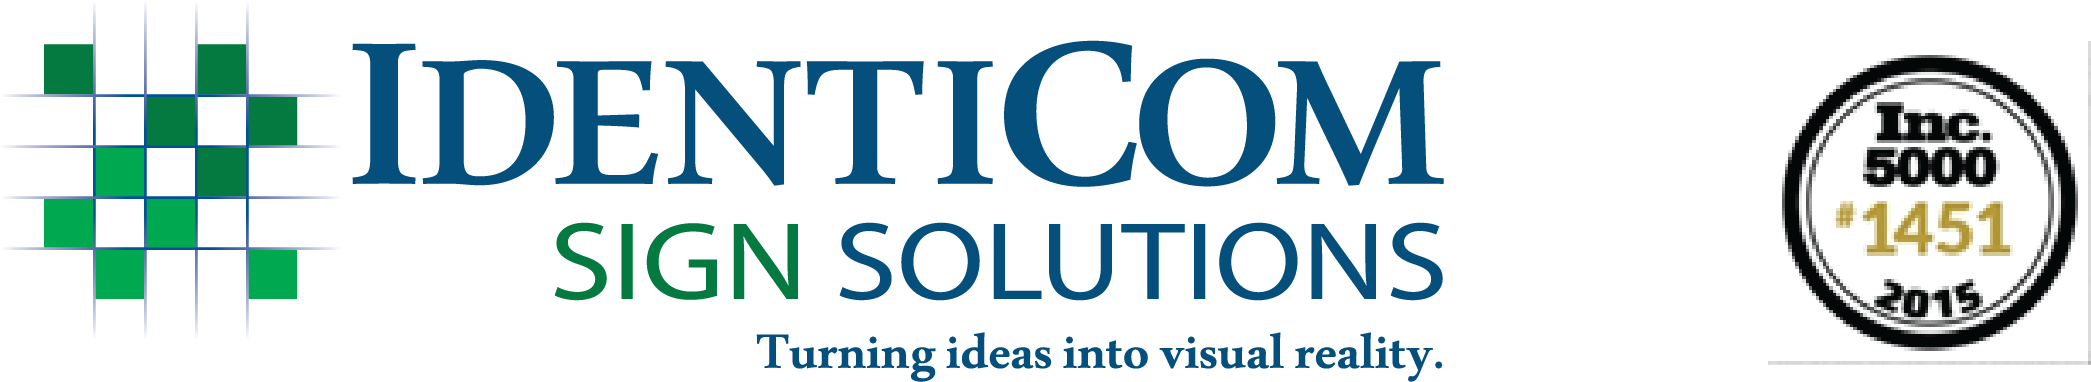 1 066 client solutions manager jobs now hiring in lake buena